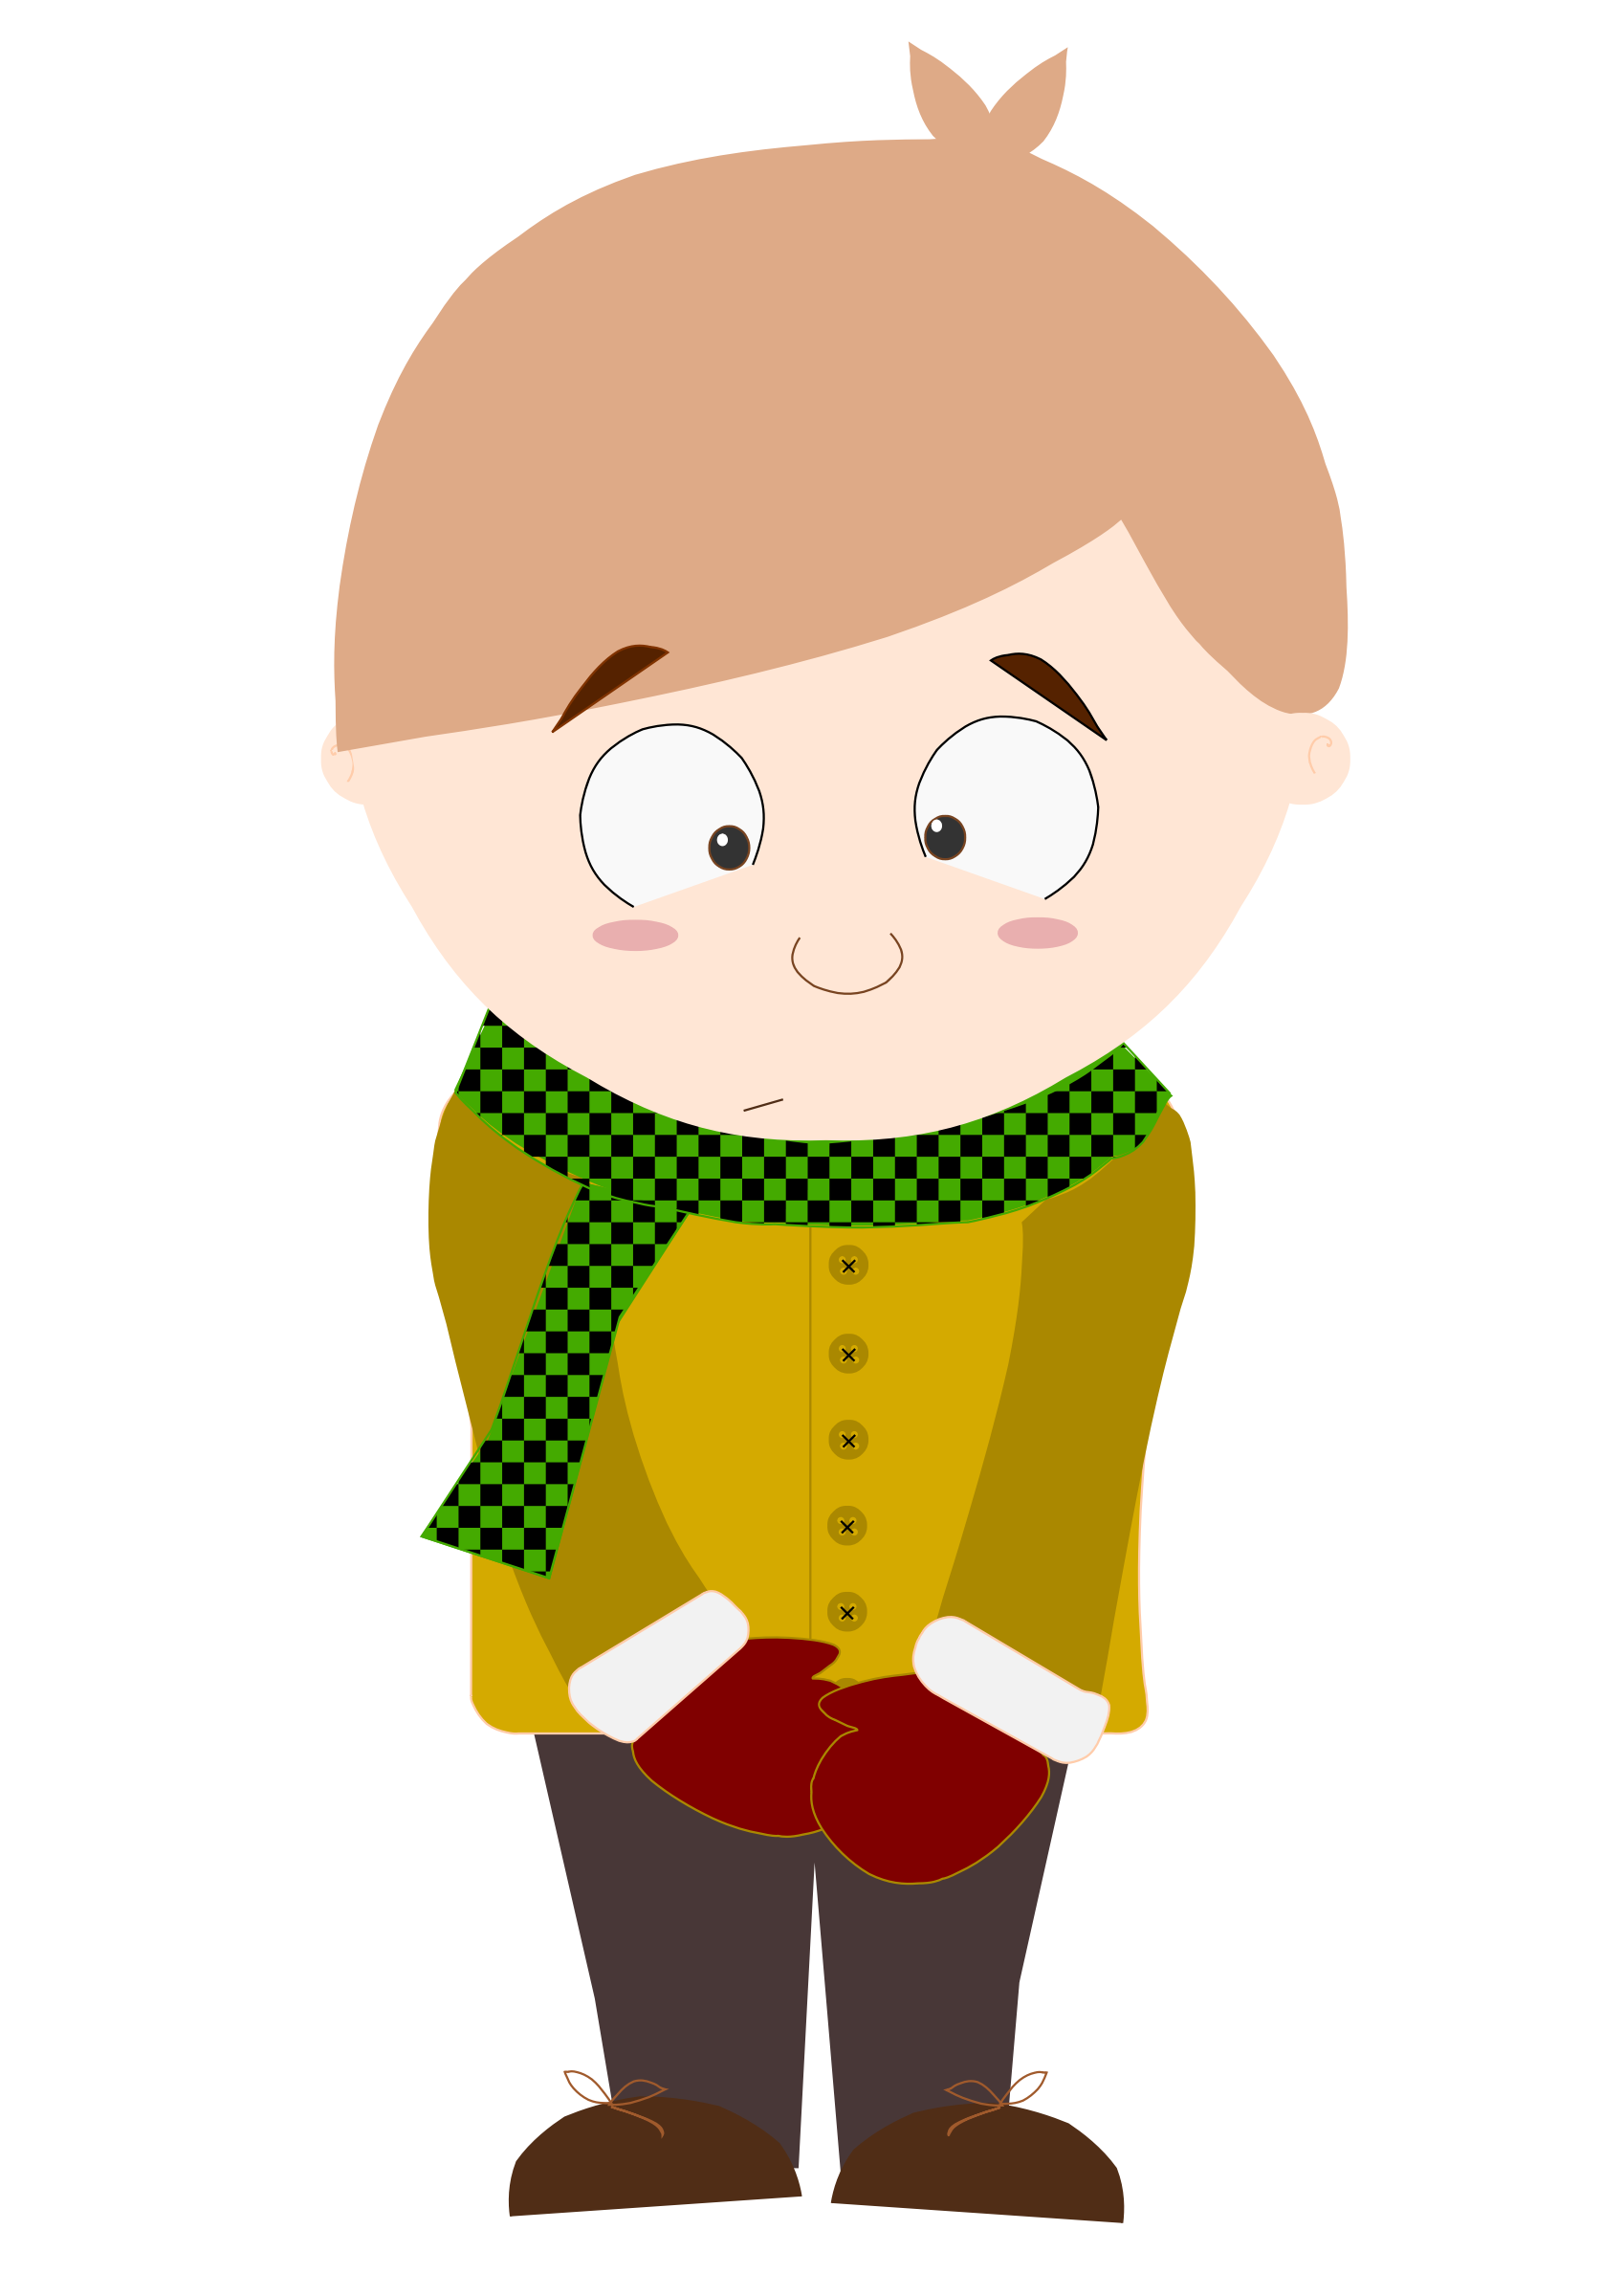 Awesome clipart cartoon. Shy kid animation big